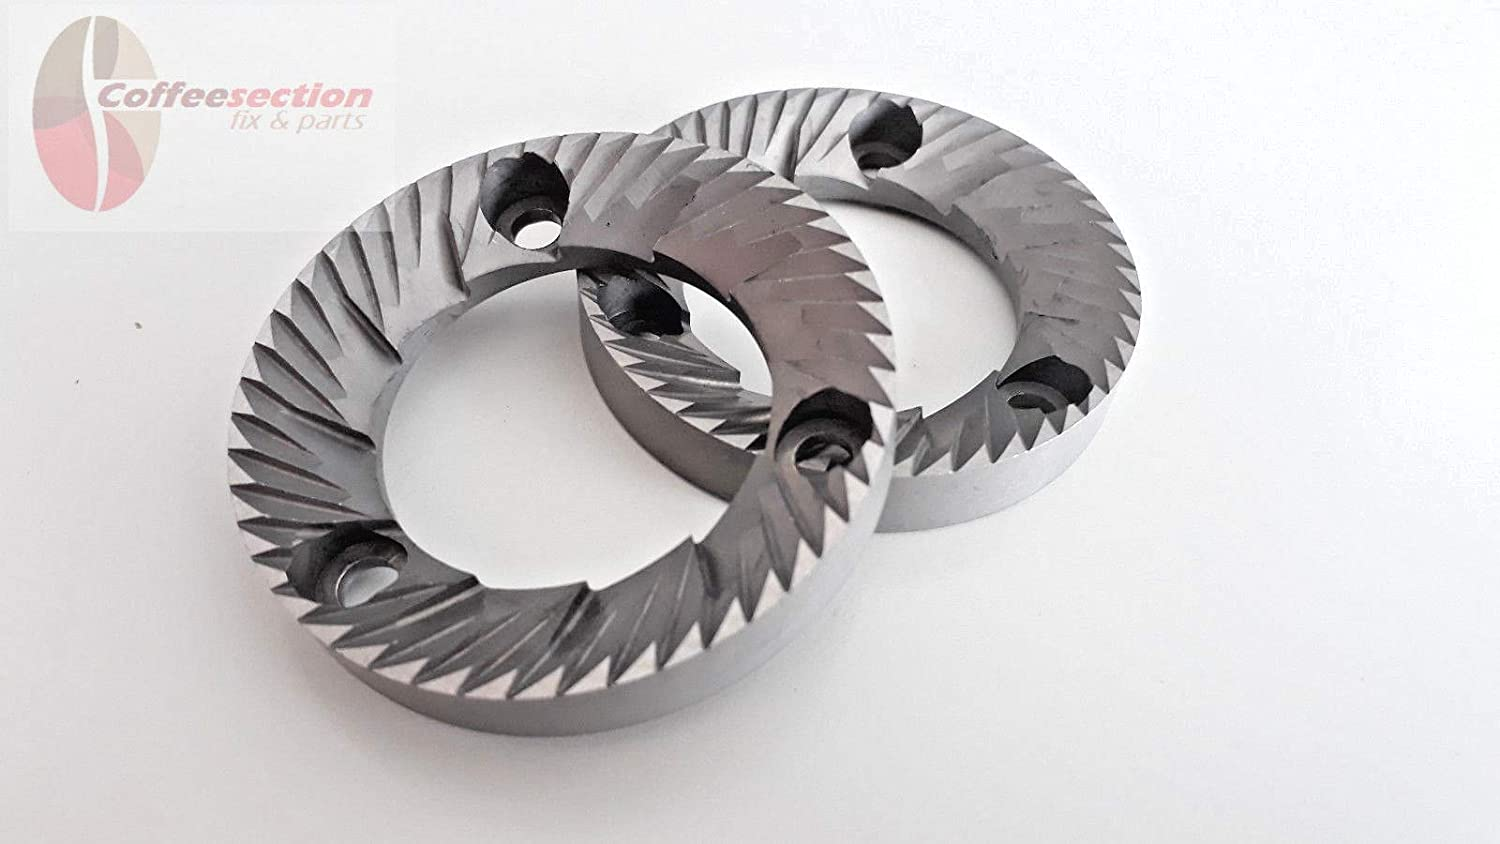 Rancilio Rocky / MD40 Grinder burrs - 50 mm/31 mm/8 mm - LH, SX - Italy